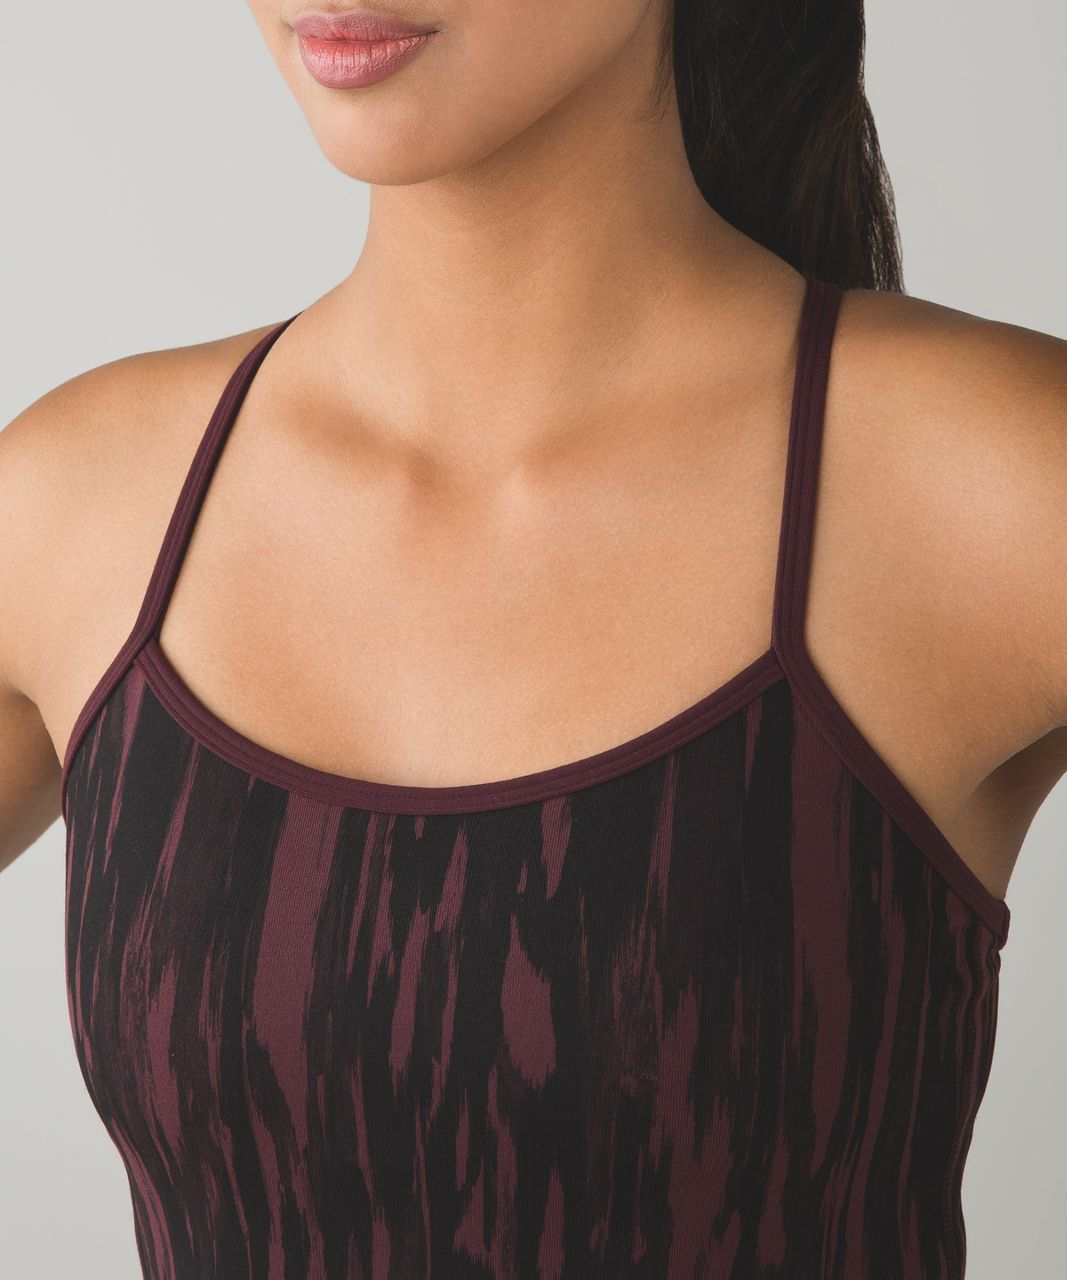 Lululemon Power Y Tank *Luon - Painted Animal Bordeaux Drama Black / Bordeaux Drama